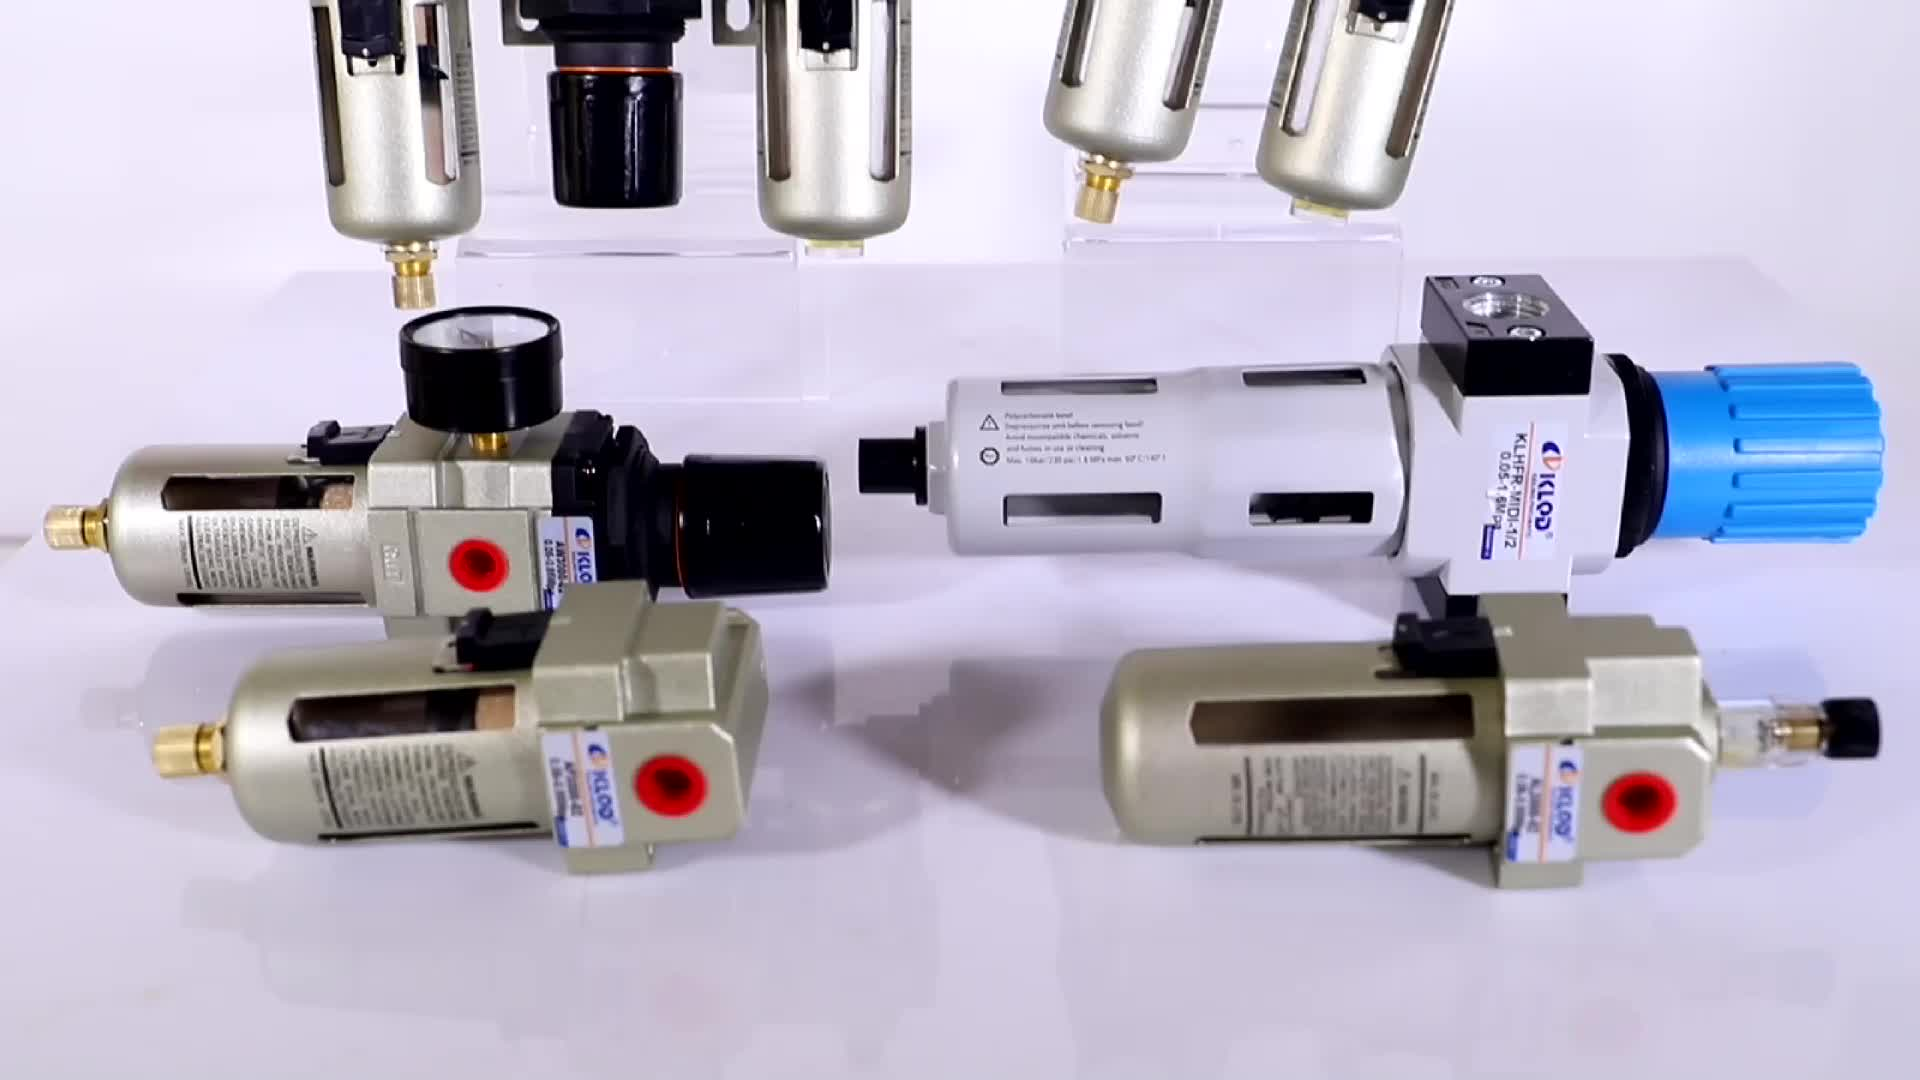 air line air filter regulator and lubricator combination FRL units, AC2010-01